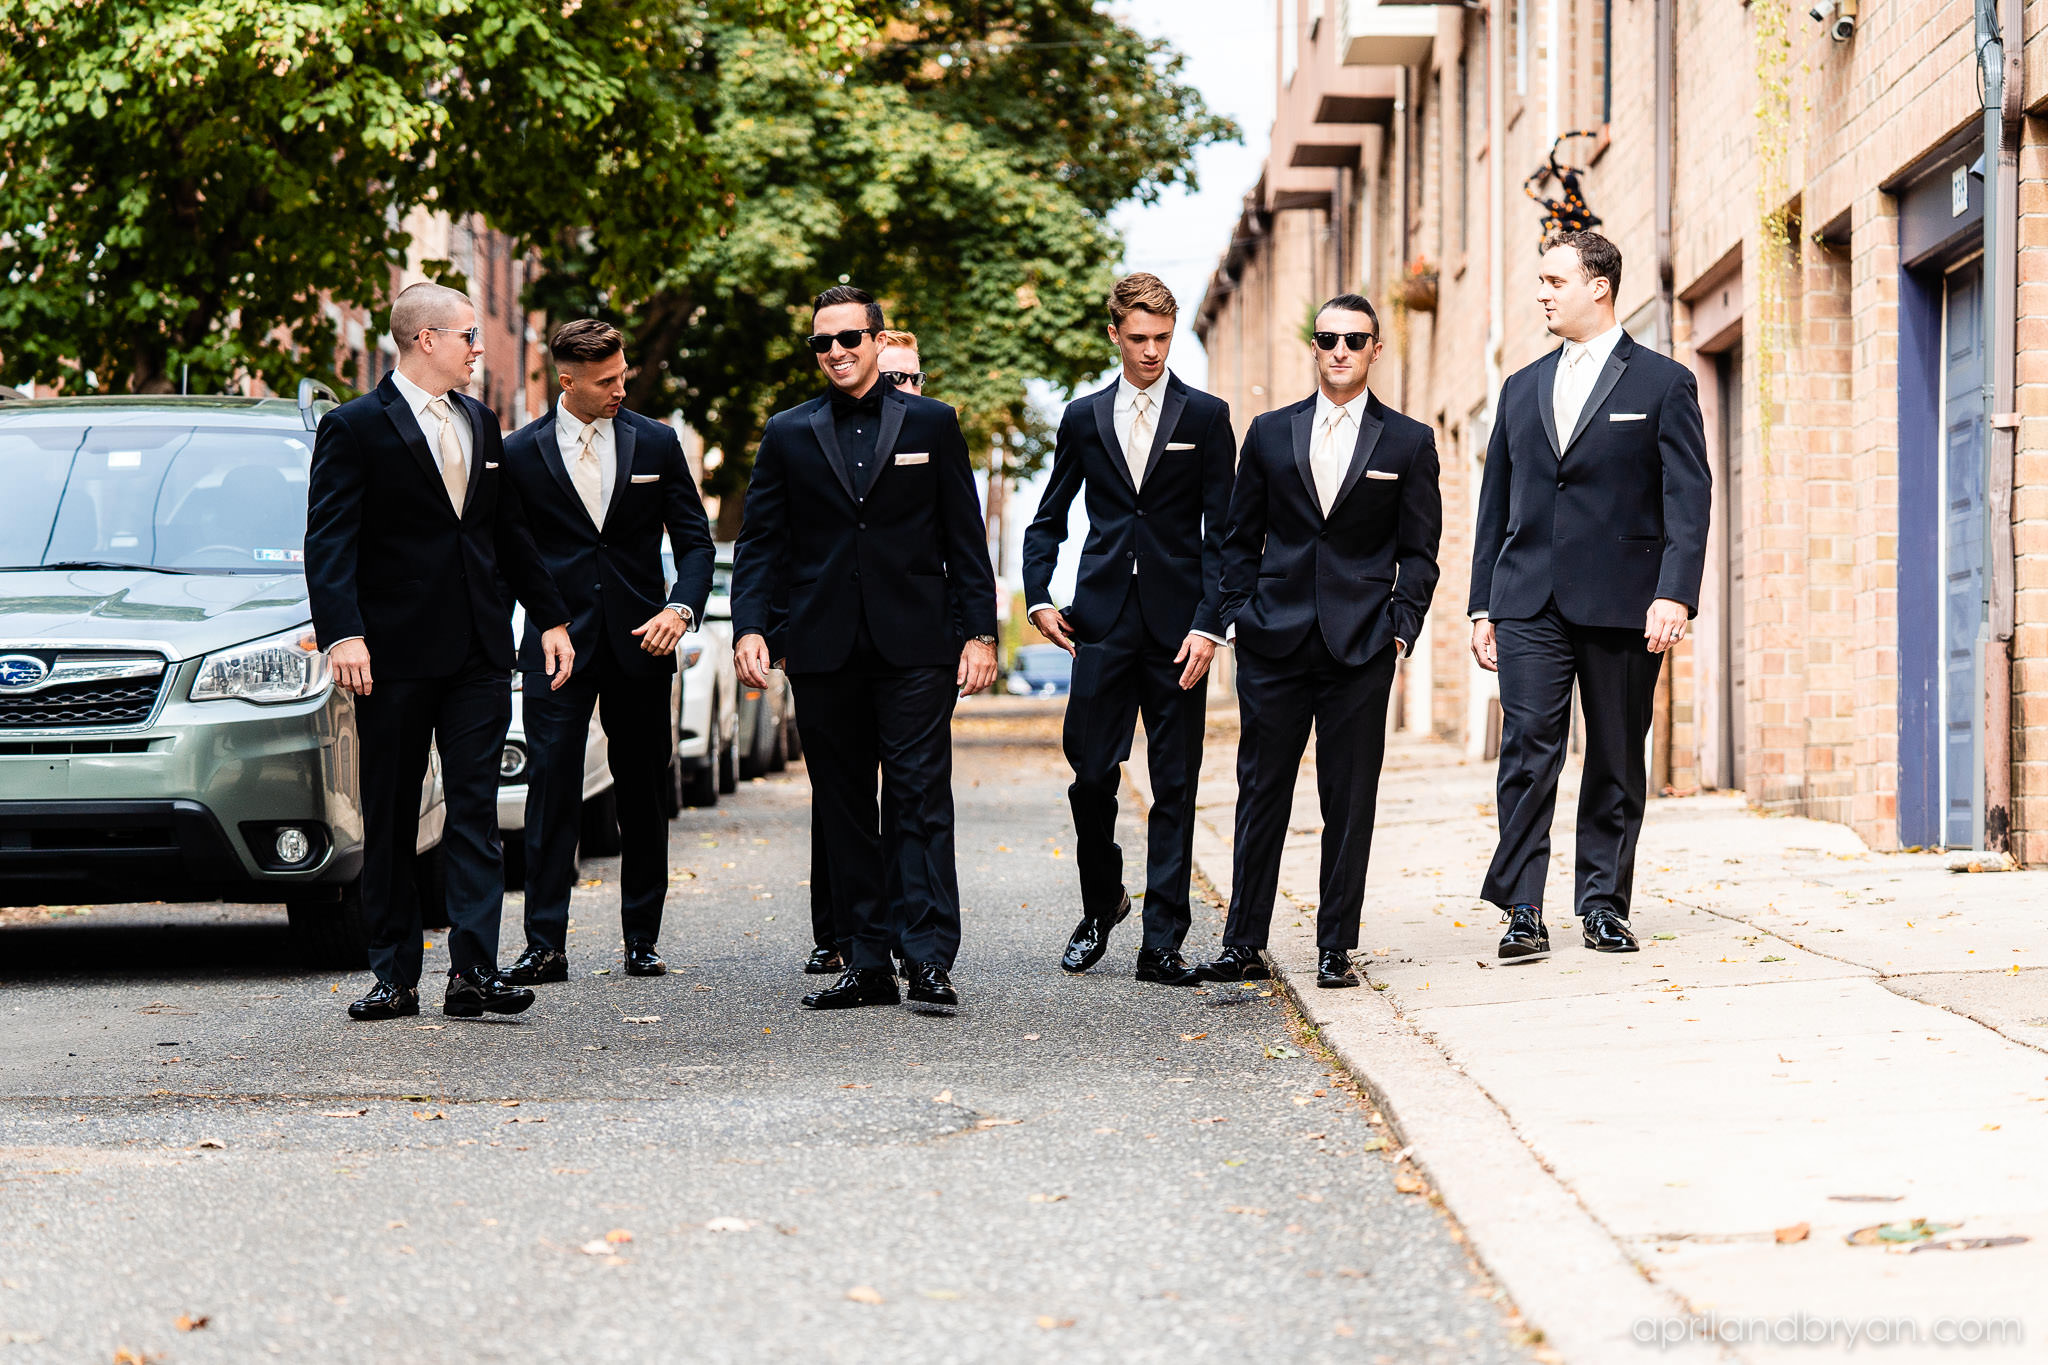 The groomsmen take a stroll before the ceremony at the Franklin Institute in Philadelphia, PA. Shot by April & Bryan Photography. Featured on Dream Weddings.